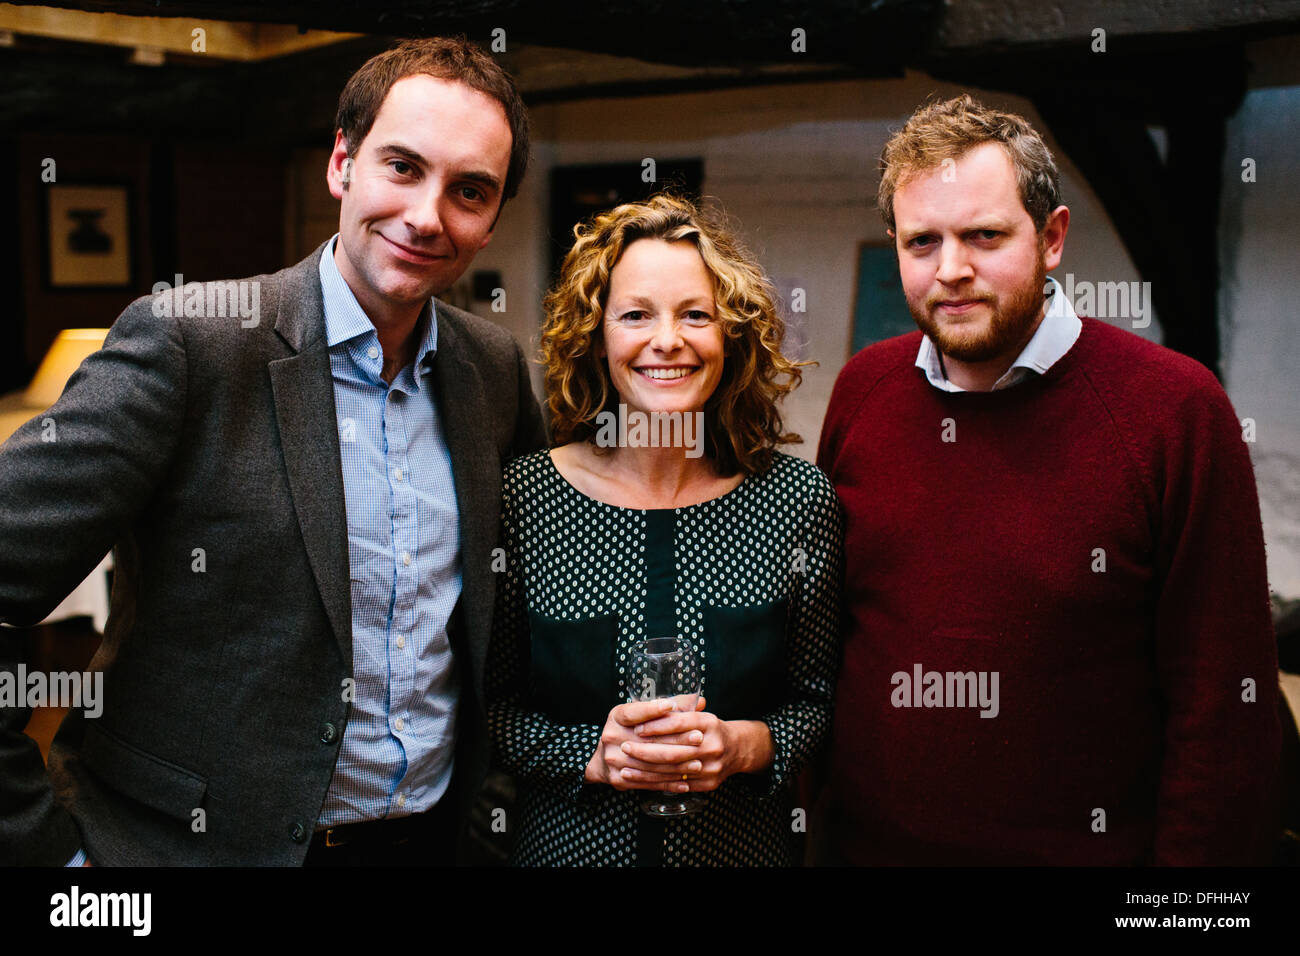 Dougie Anderson & Kate Humble & Miles Jupp Photo Stock